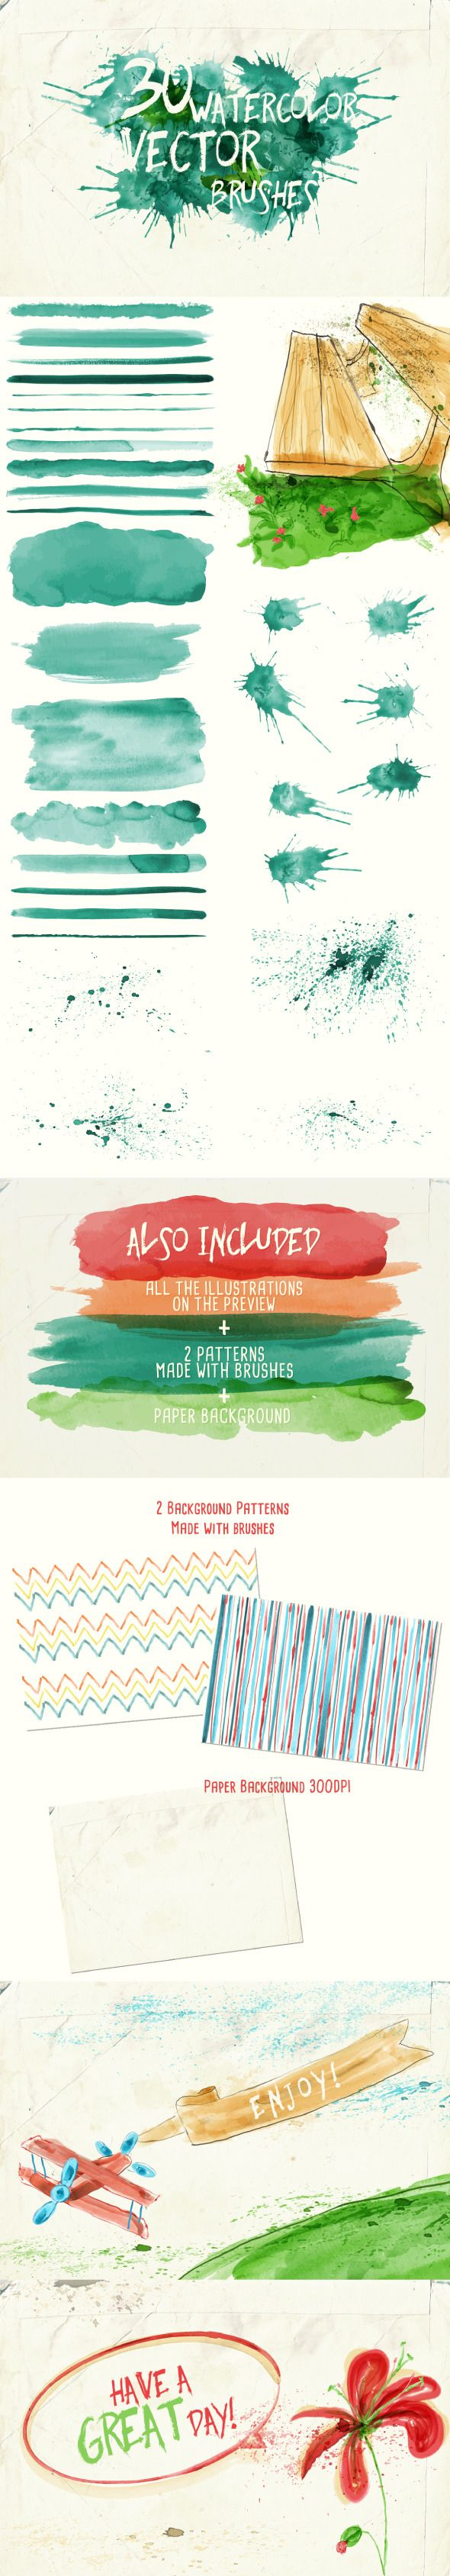 Watercolor Vector Art Brushes for Adobe Illustrator #design #ai Download: http://graphicriver.net/item/watercolor-vector-art-brushes/9845118?ref=ksioks